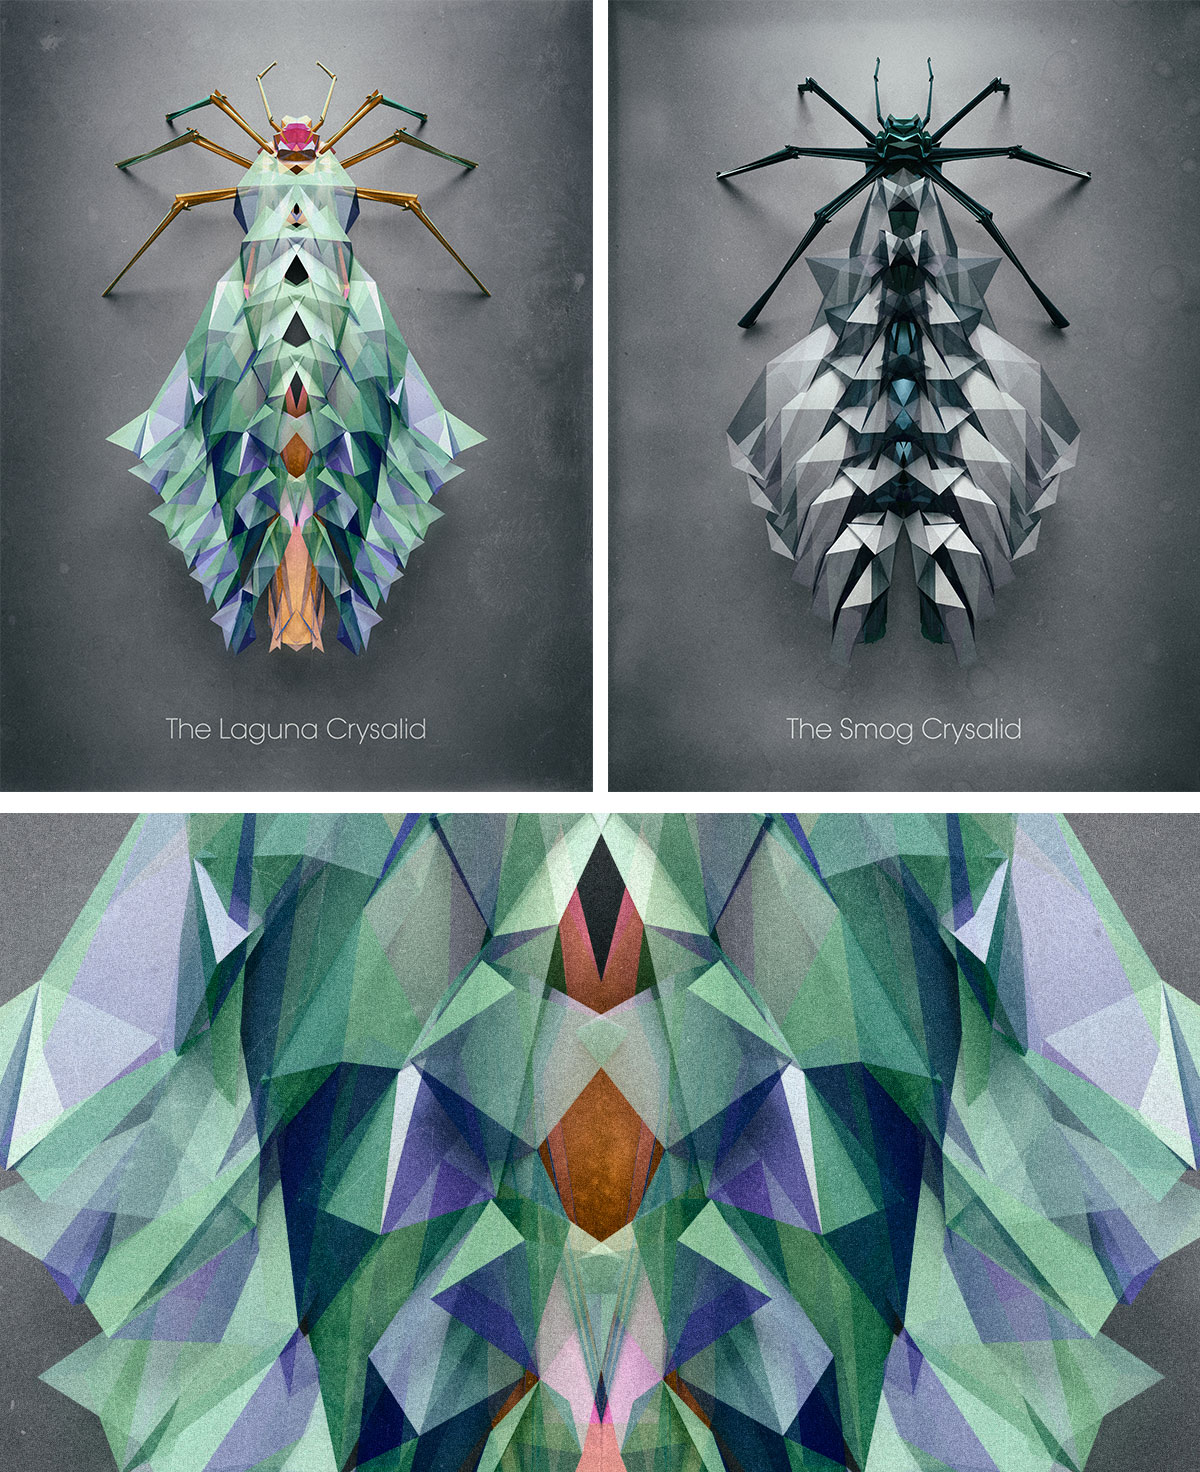 Images of extraterrestrial insects, from the project Biotop from Polygonia, by Chaotic Atmospheres